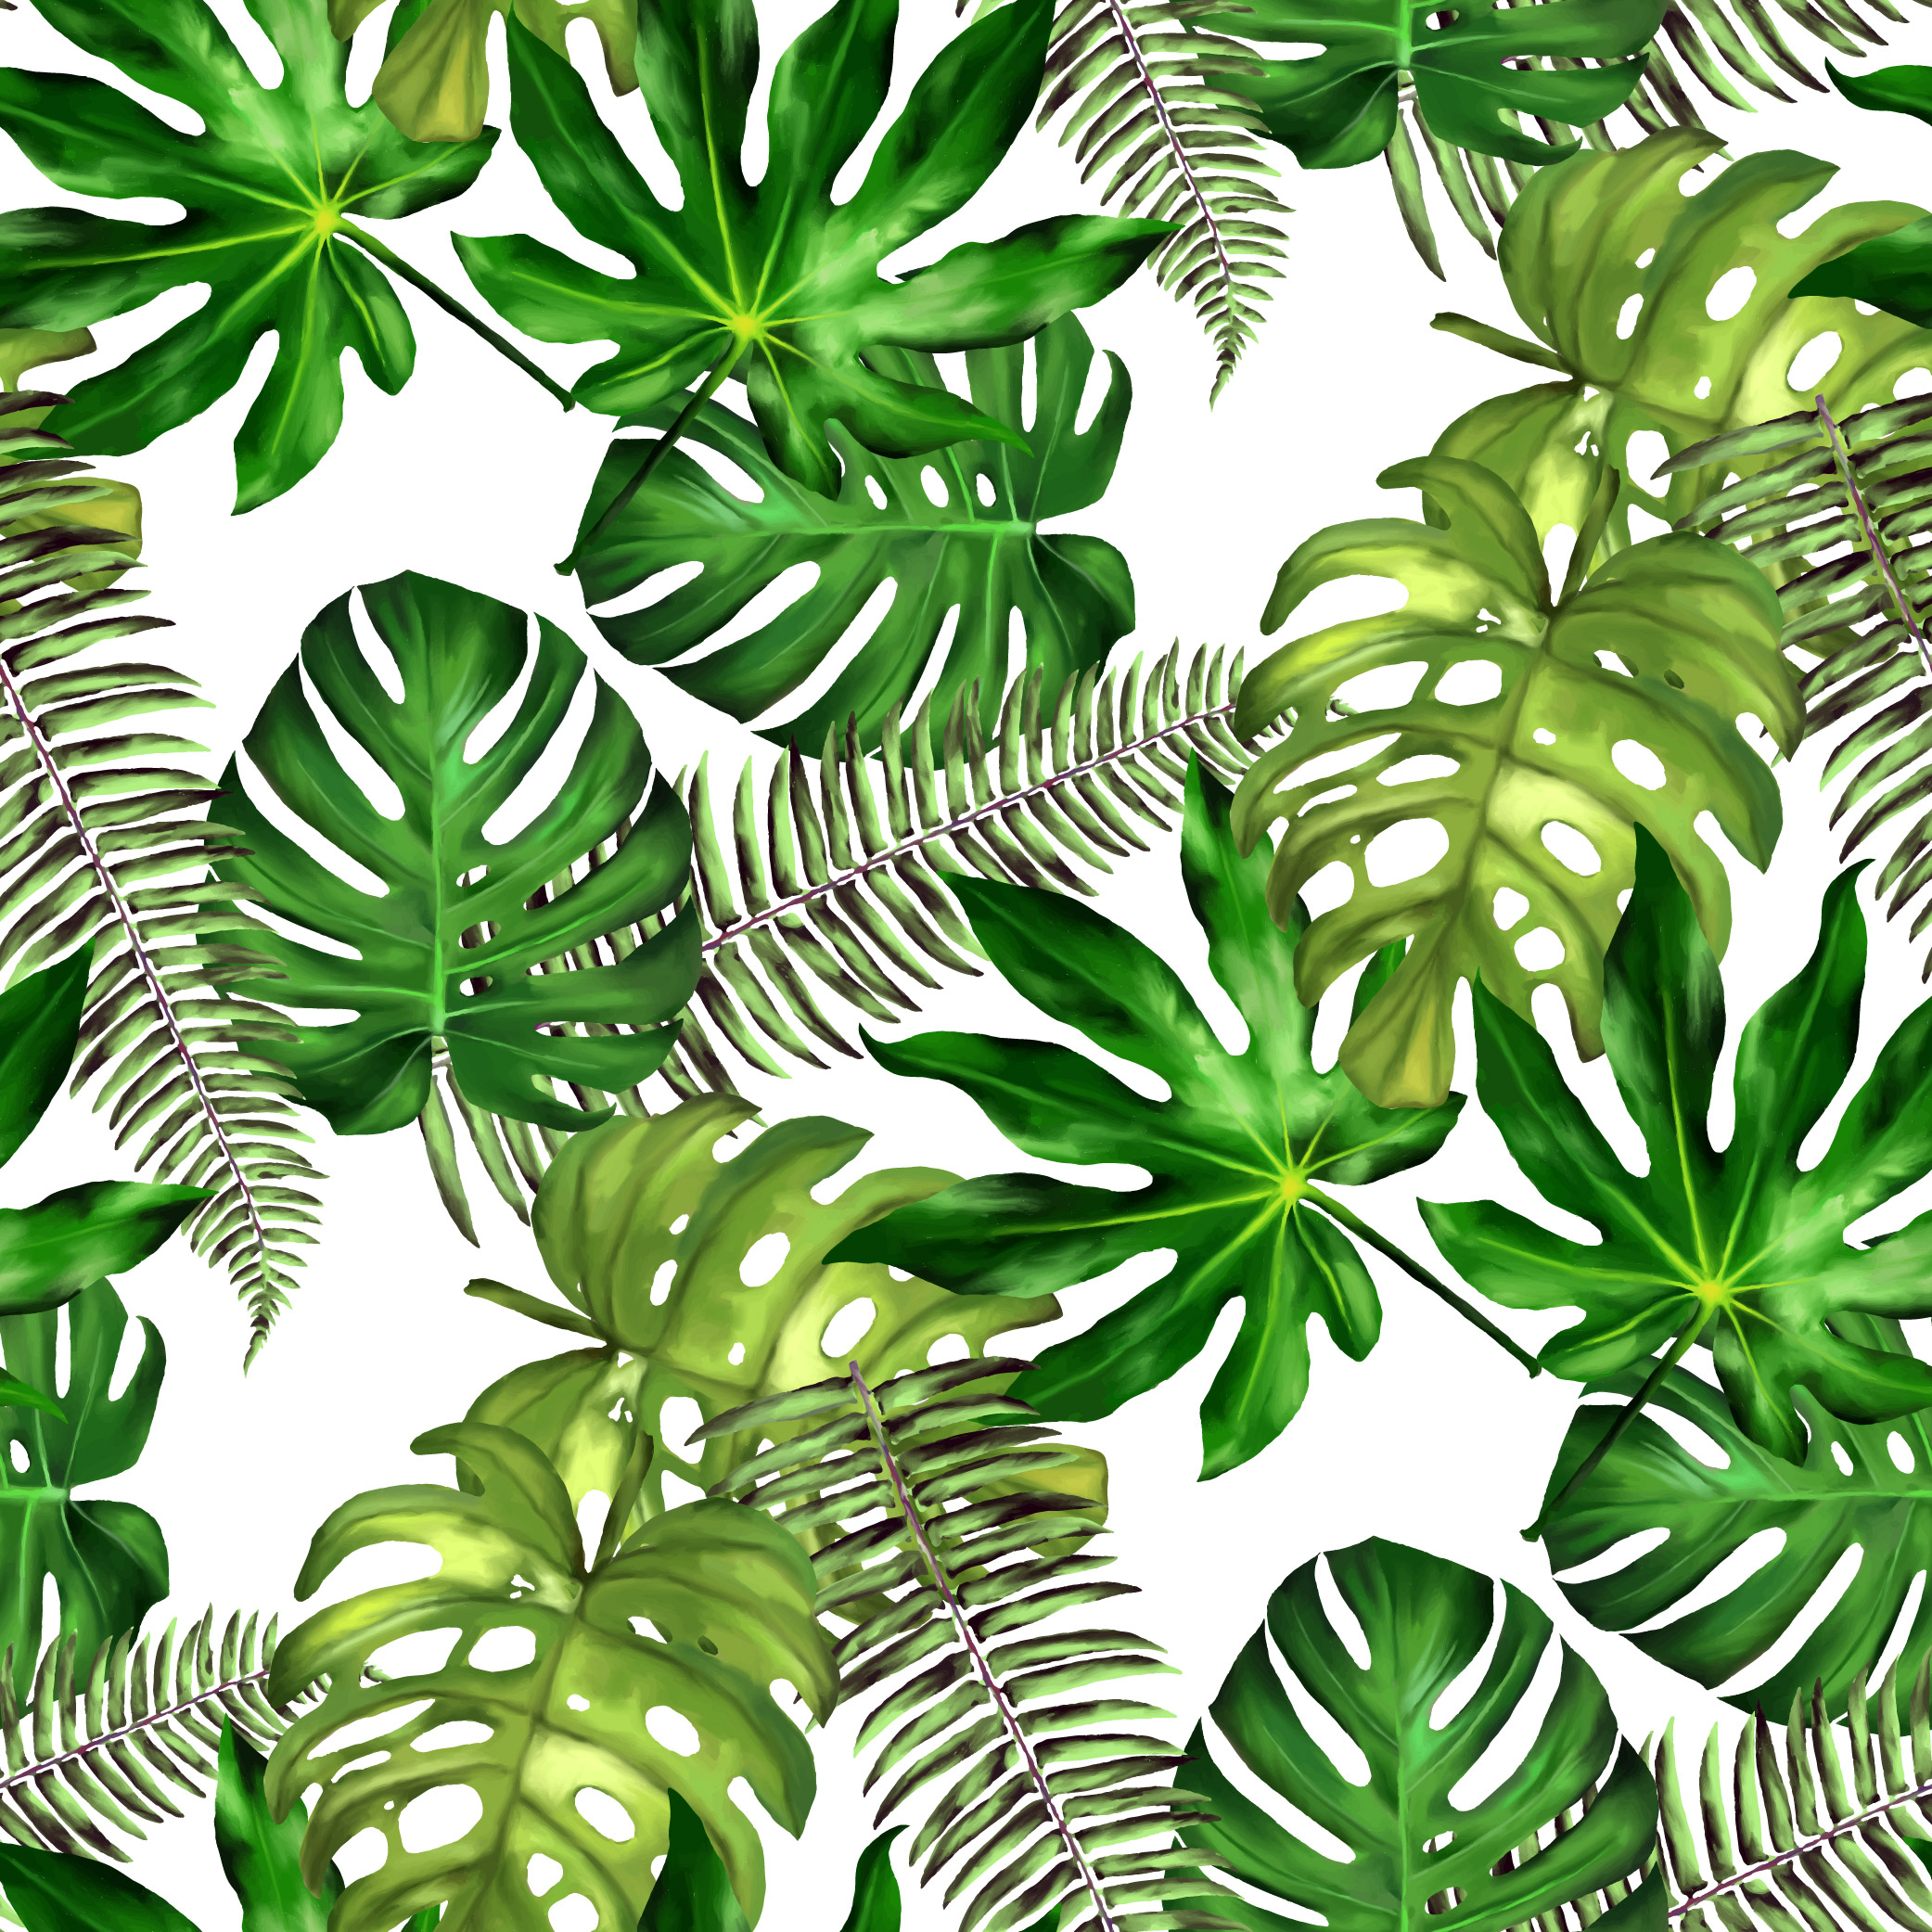 Tropical Leaves Seamless Floral Background Isolated On White Vector Illustration Download Free Vectors Clipart Graphics Vector Art Tropics jungle tropical rainforest, green coconut leaves, watercolor leaves, leaf, plant stem png. https www vecteezy com vector art 556341 tropical leaves seamless floral background isolated on white vector illustration